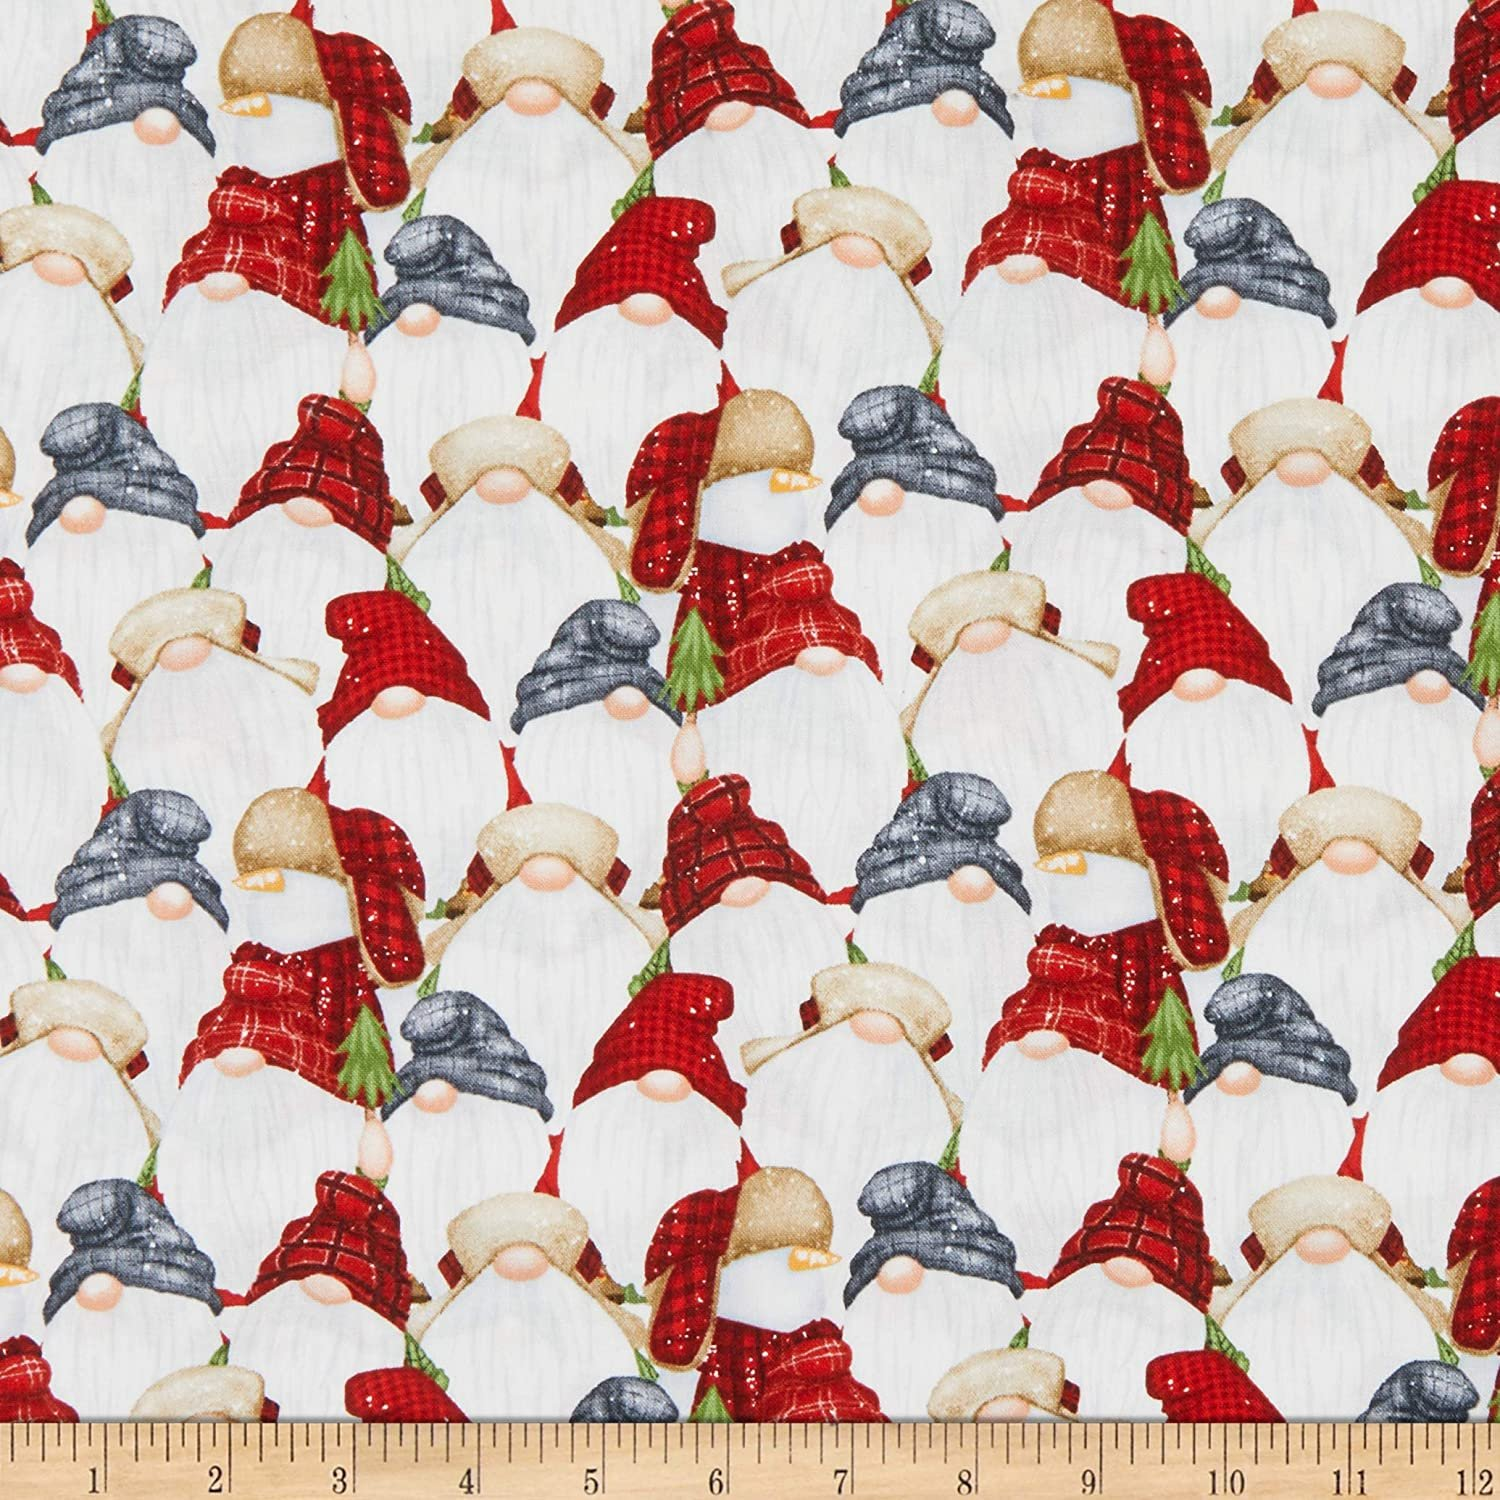 Timber Gnomies for Henry Glass by Shelly Comiskey - Stacked Gnomes Multi